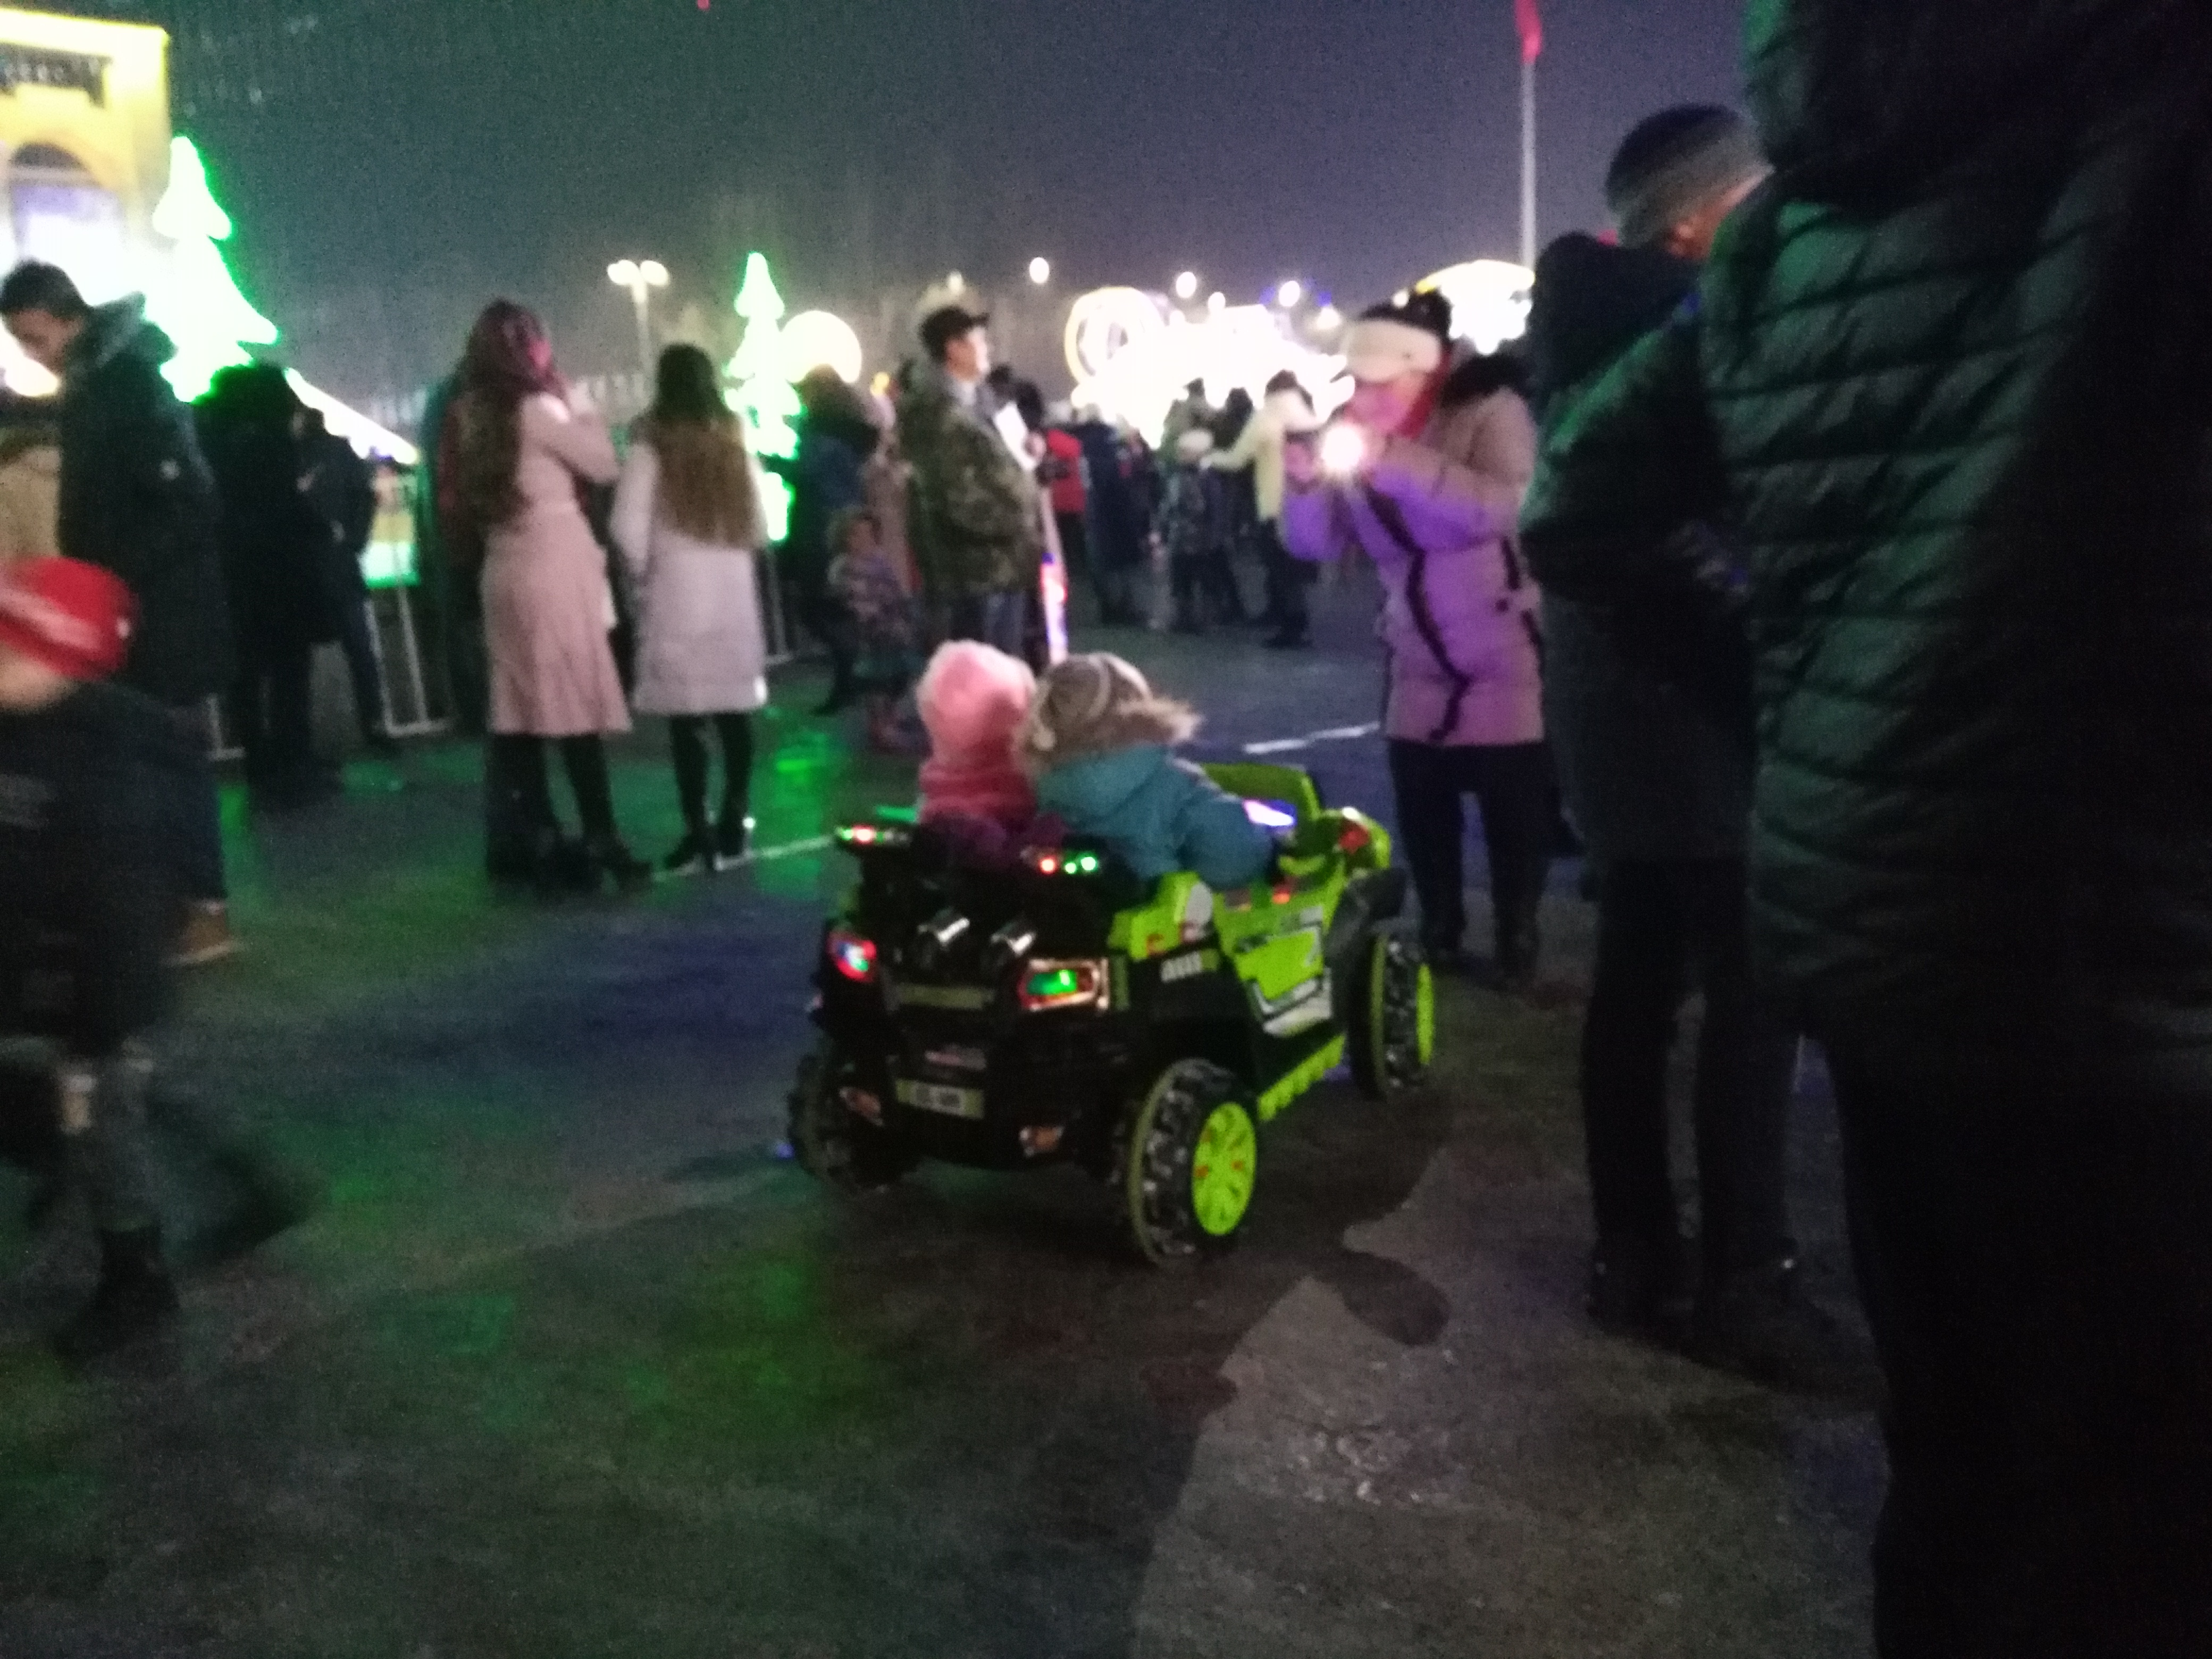 Puny babies riding in cars propelled by remote controls controlled by their guardians at the Ala-Too Square during New Year's eve.